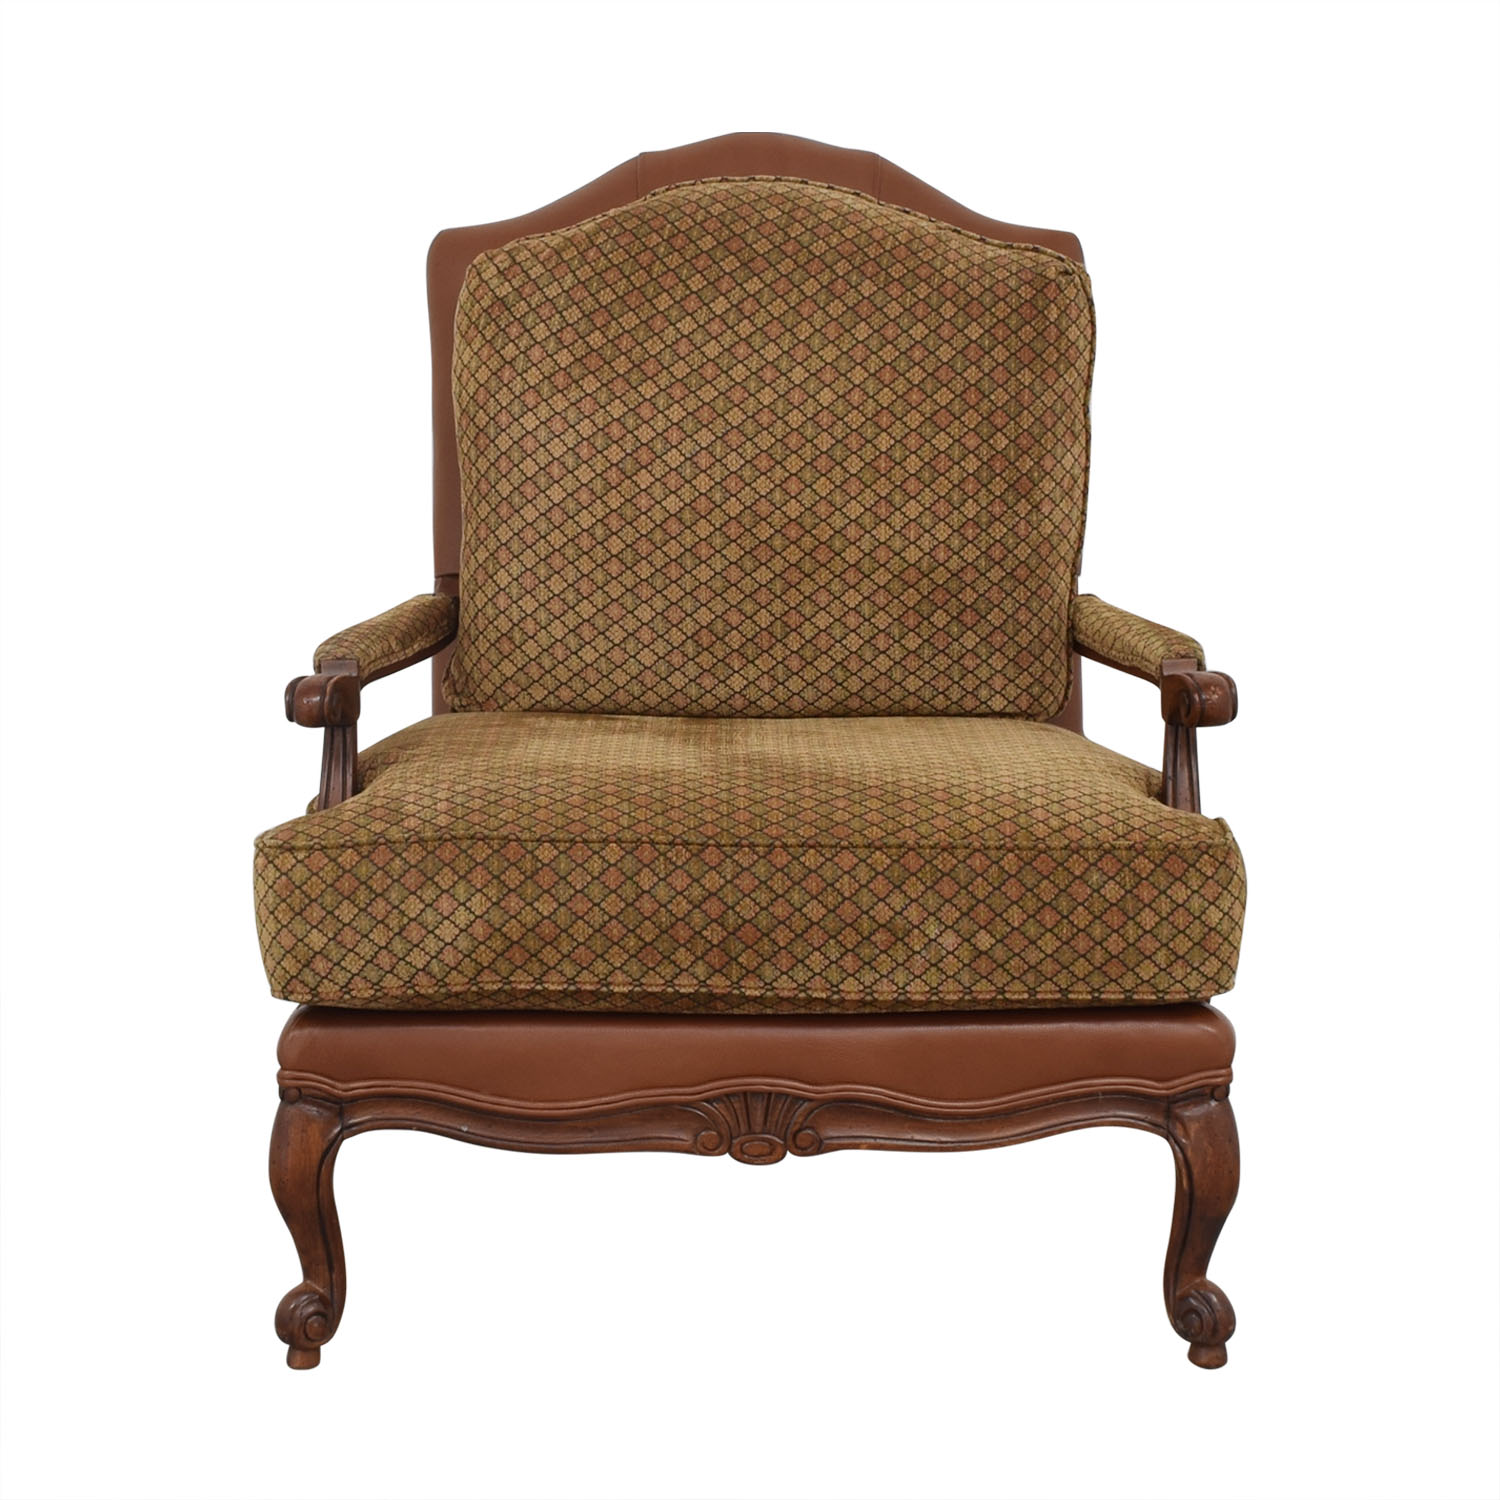 Ethan Allen Ethan Allen Upholstered Accent Chair Chairs